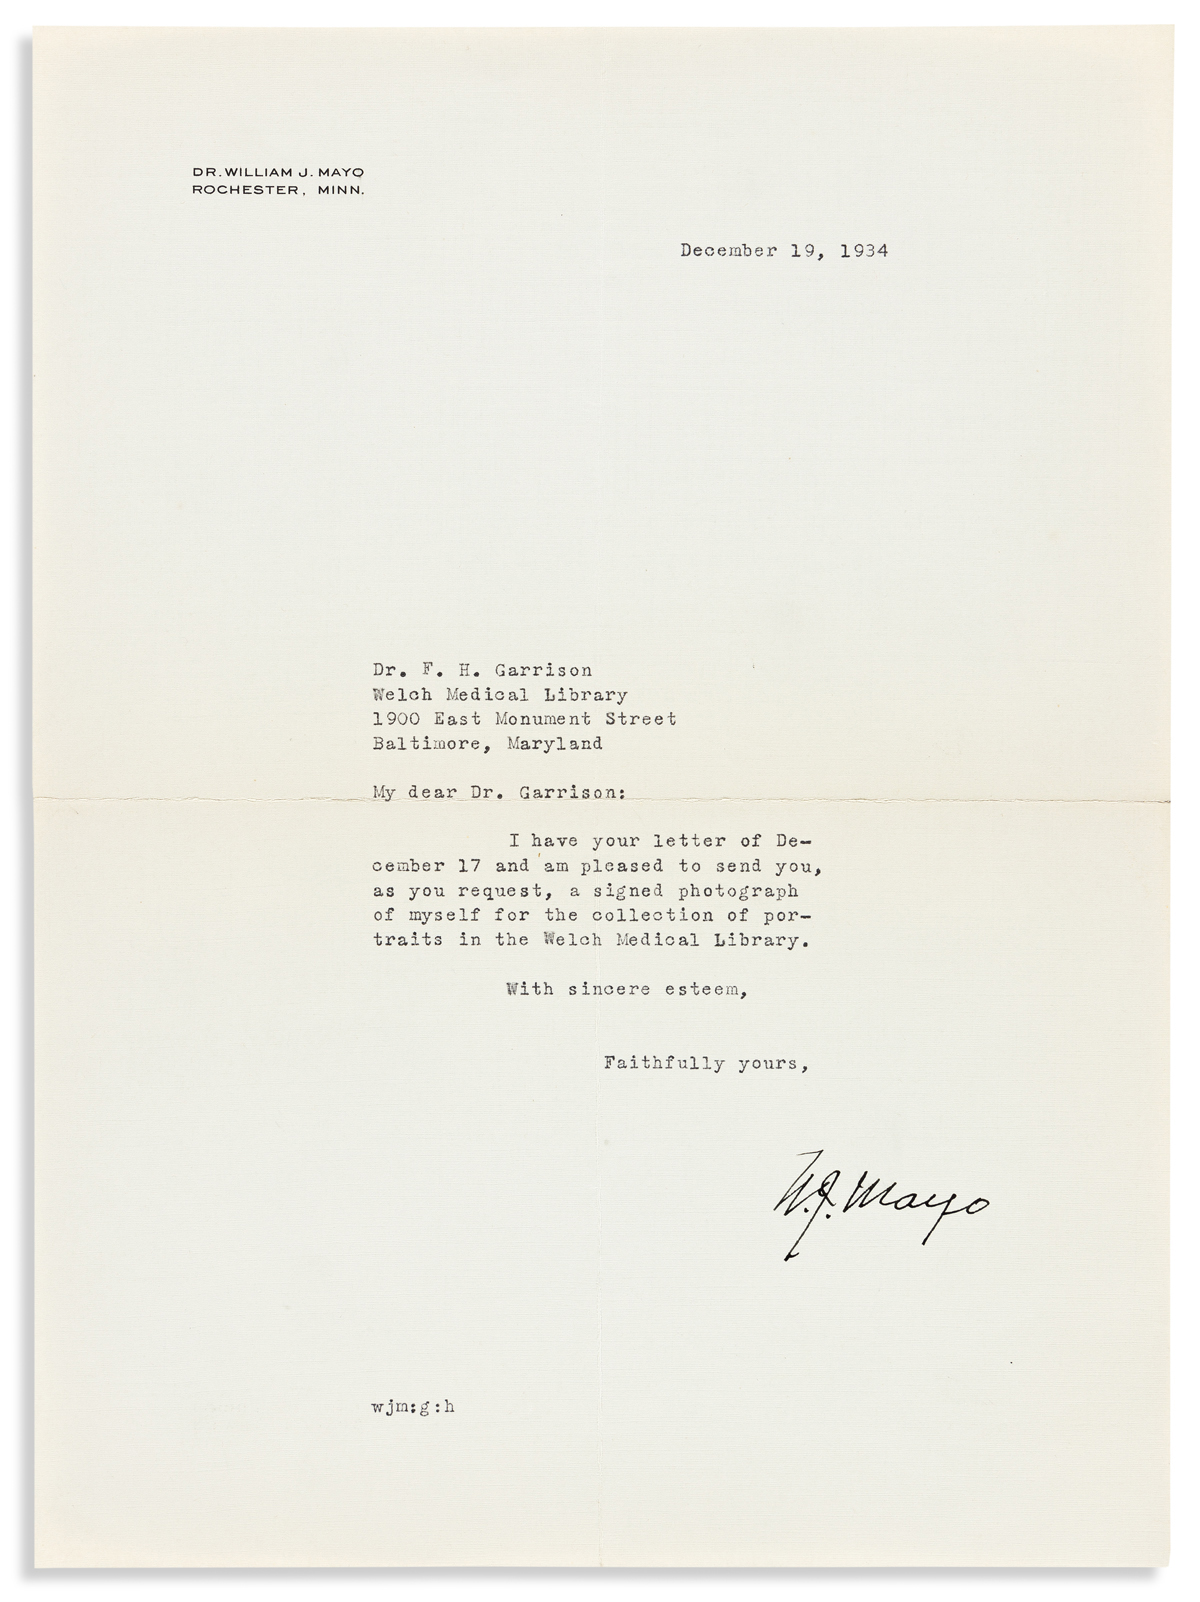 (MEDICINE.) MAYO, WILLIAM J. Brief Typed Letter Signed, W.J. Mayo, to Dr. F.H. Garrison,